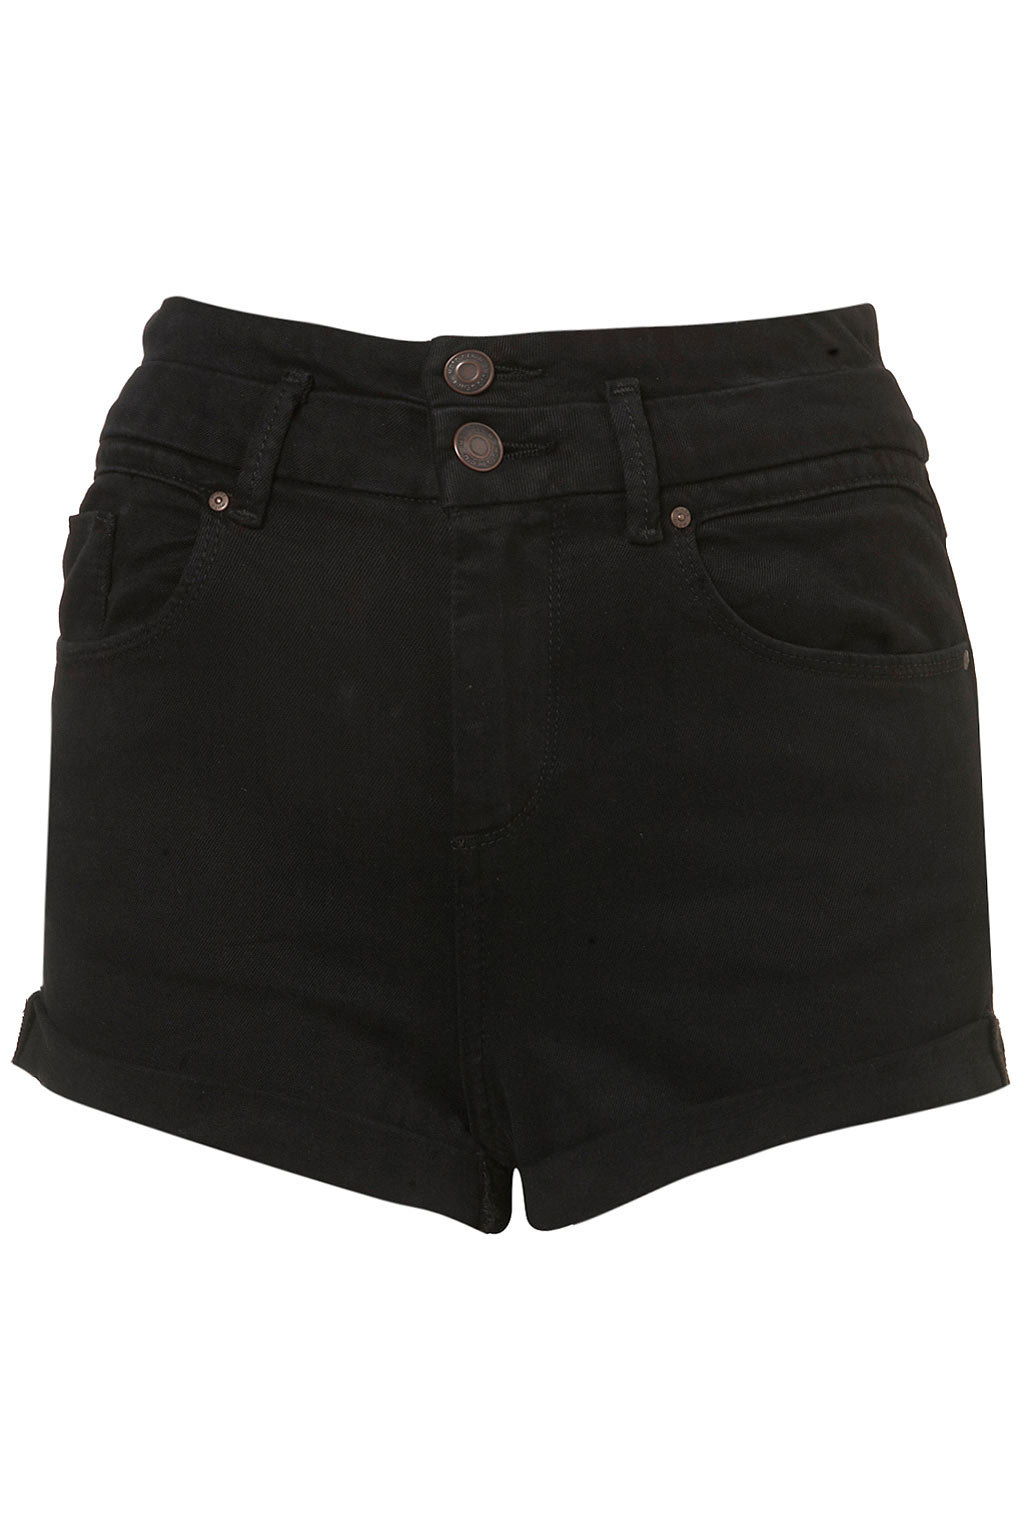 MOTO Black High Waisted Shorts - Shorts - Clothing - Topshop USA on Wanelo